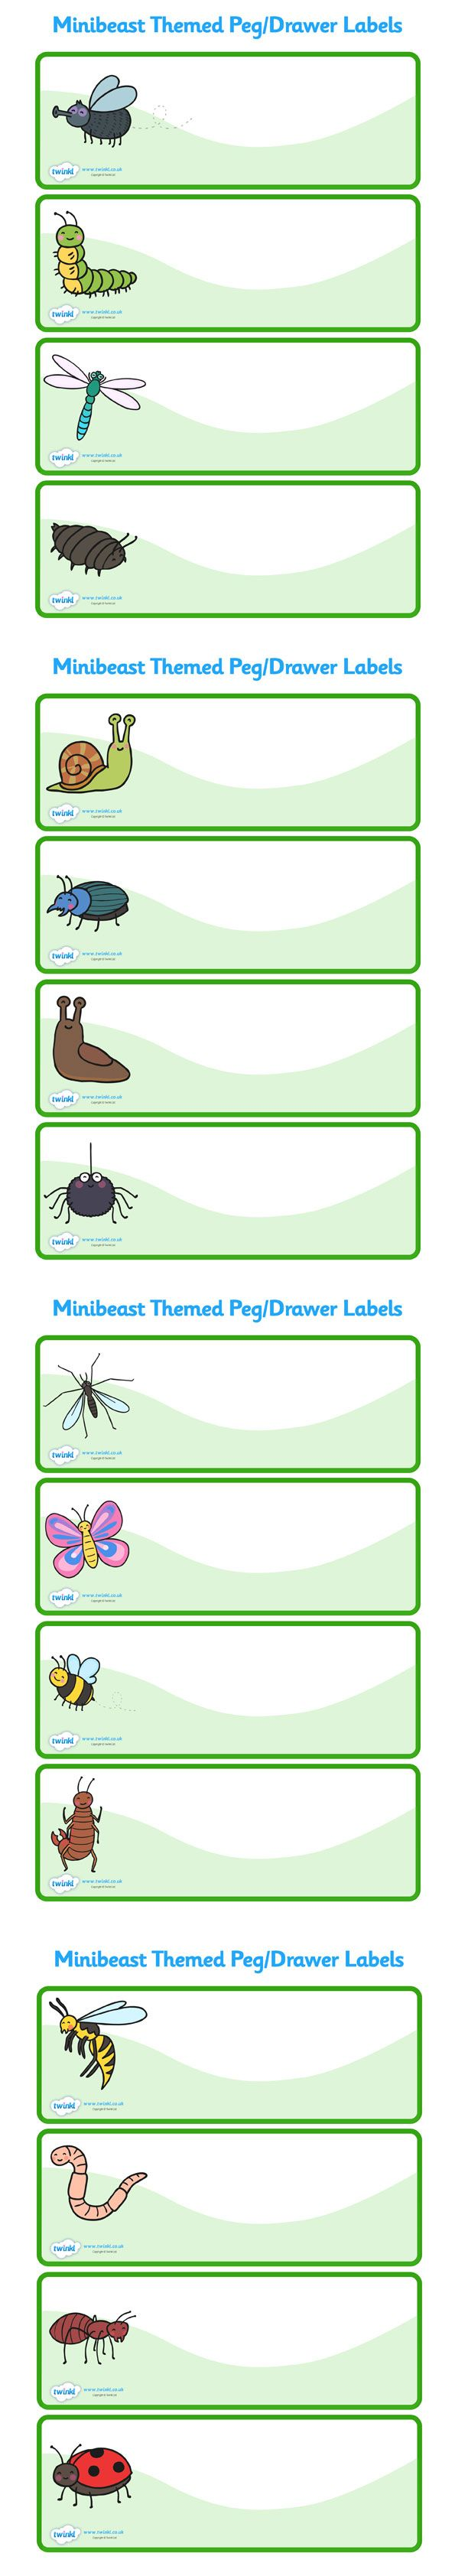 Twinkl Resources >> Editable Peg Drawer Labels (Minibeasts)  >> Classroom printables for Pre-School, Kindergarten, Elementary School and beyond! Labels, Drawers, Pegs, Minibeasts,